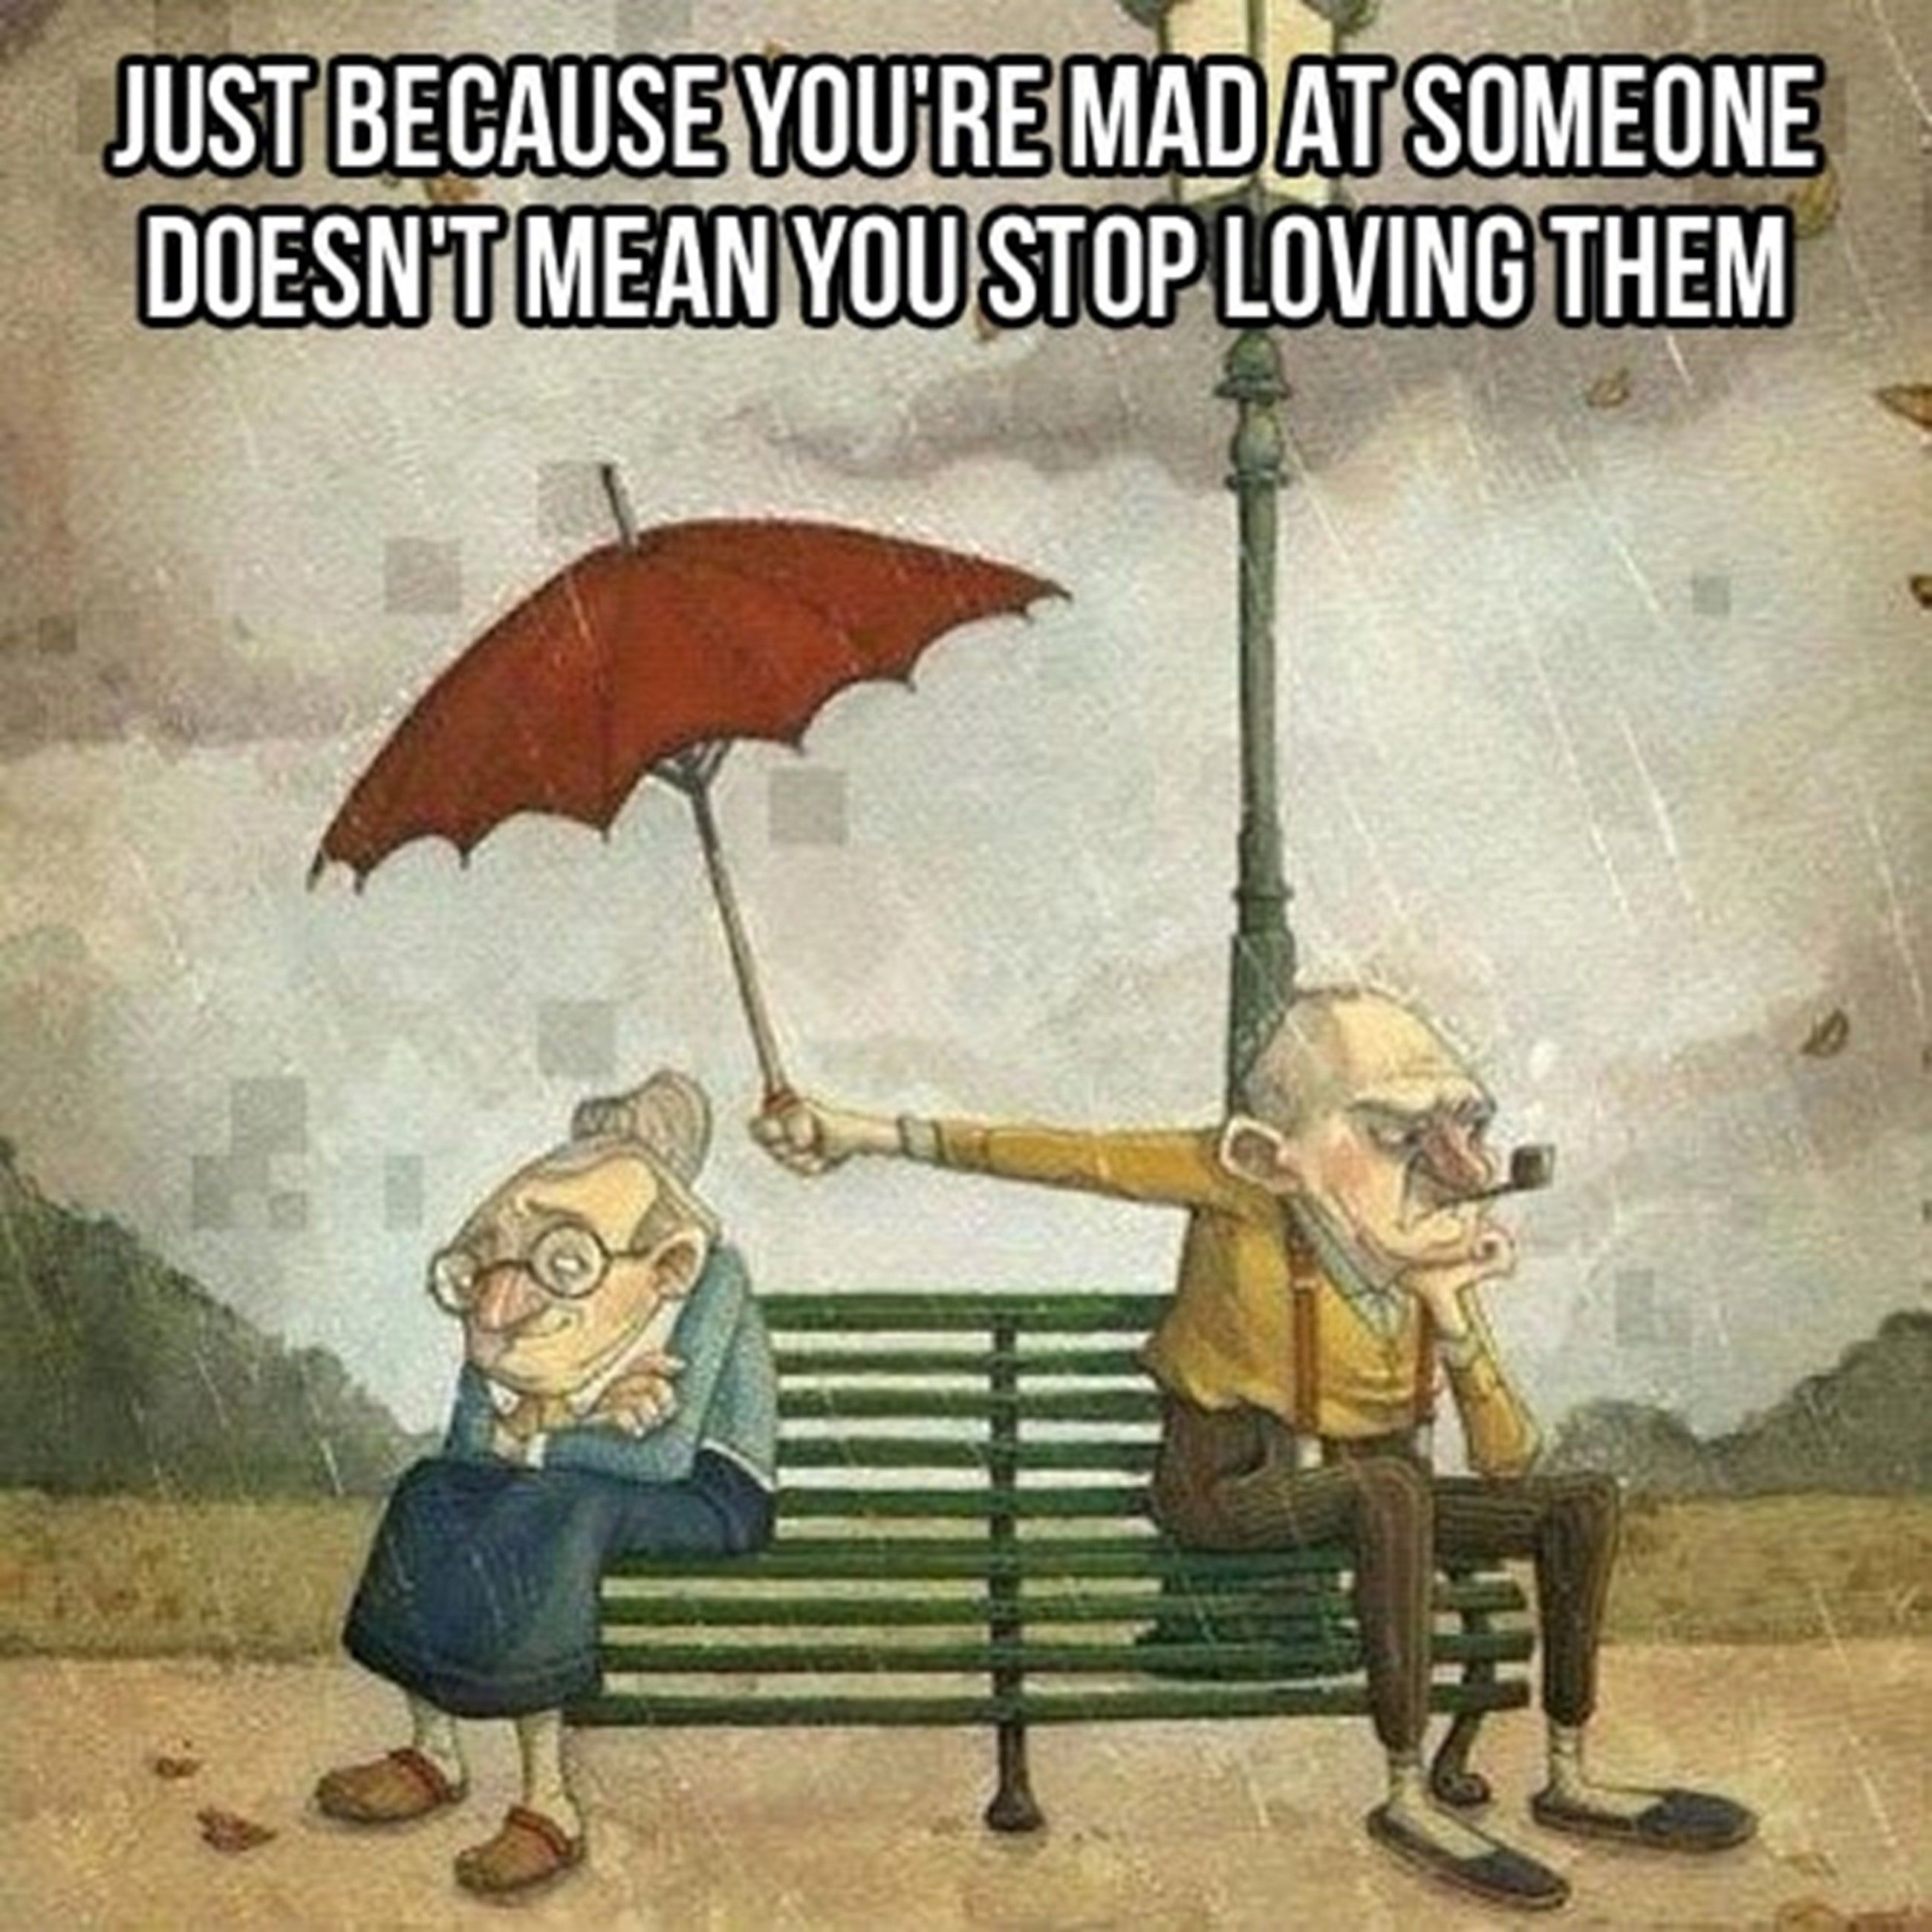 Just because youre mad at someone doesnt mean you stop